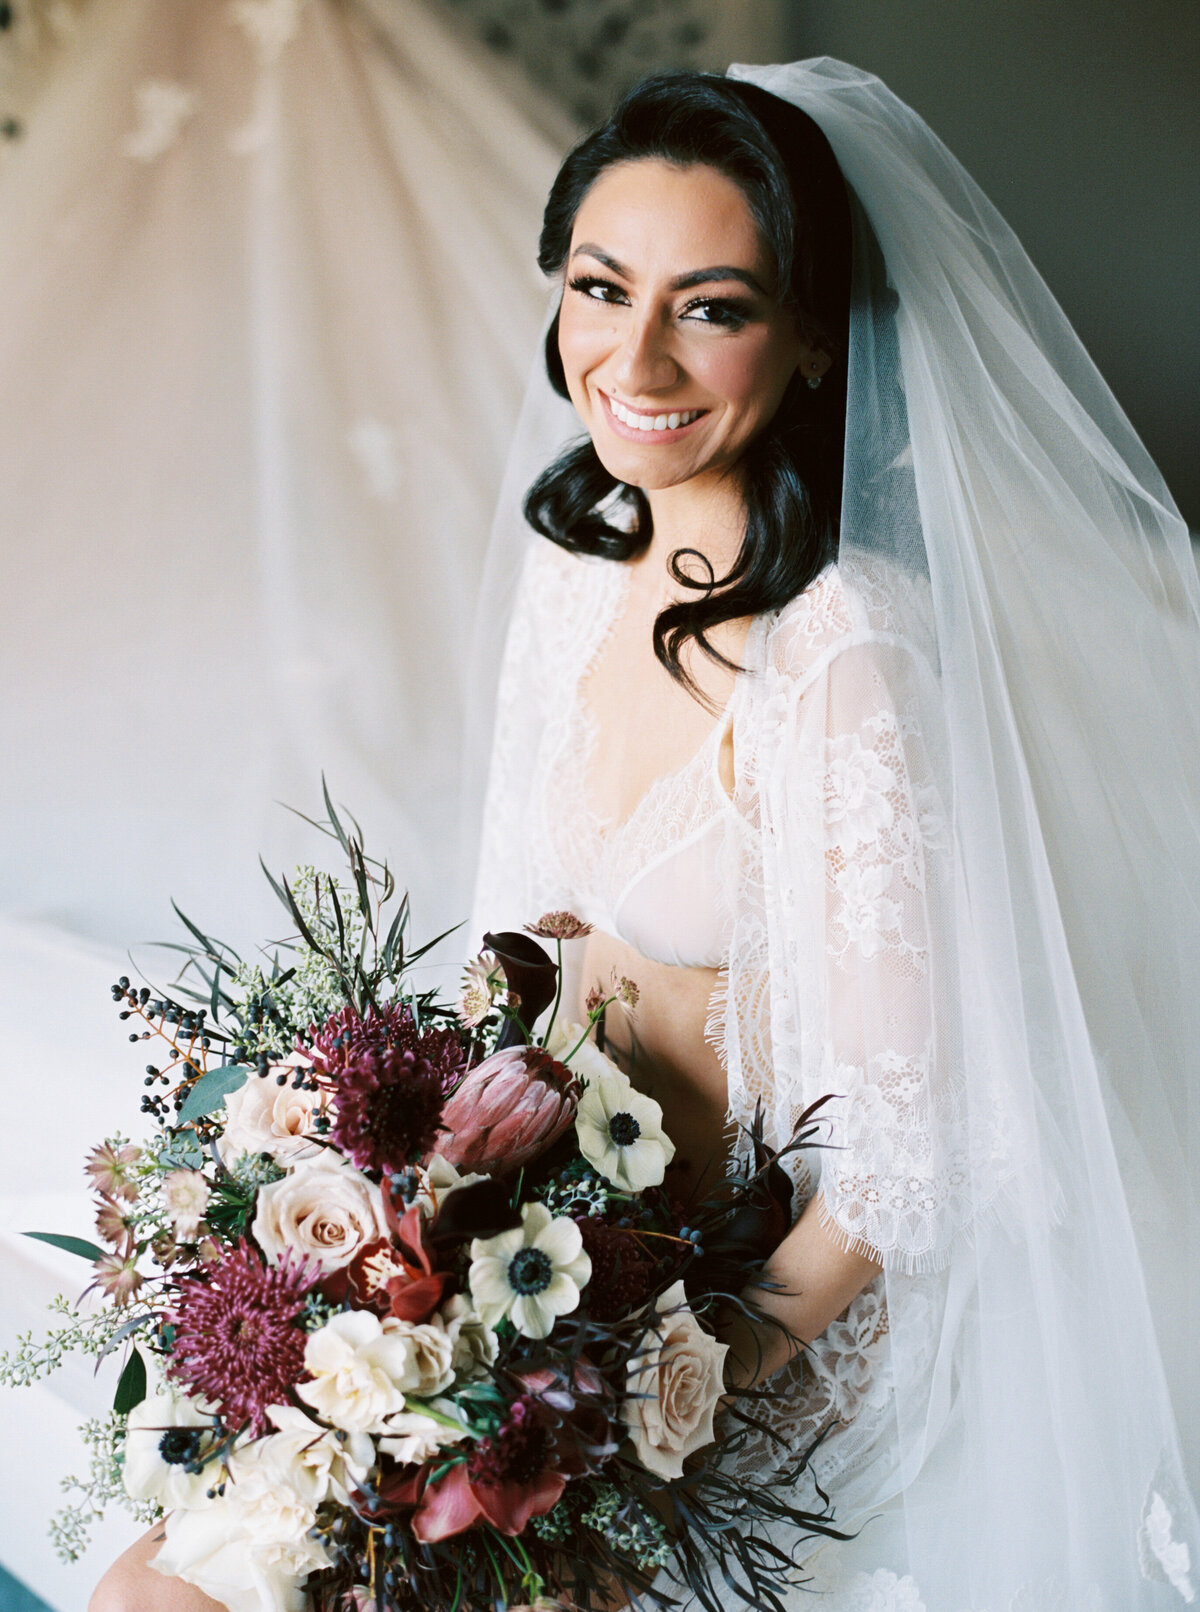 Kaylea Moreno_wedding gallery - Rami-Cassandra-Wedding-krmorenophoto-62